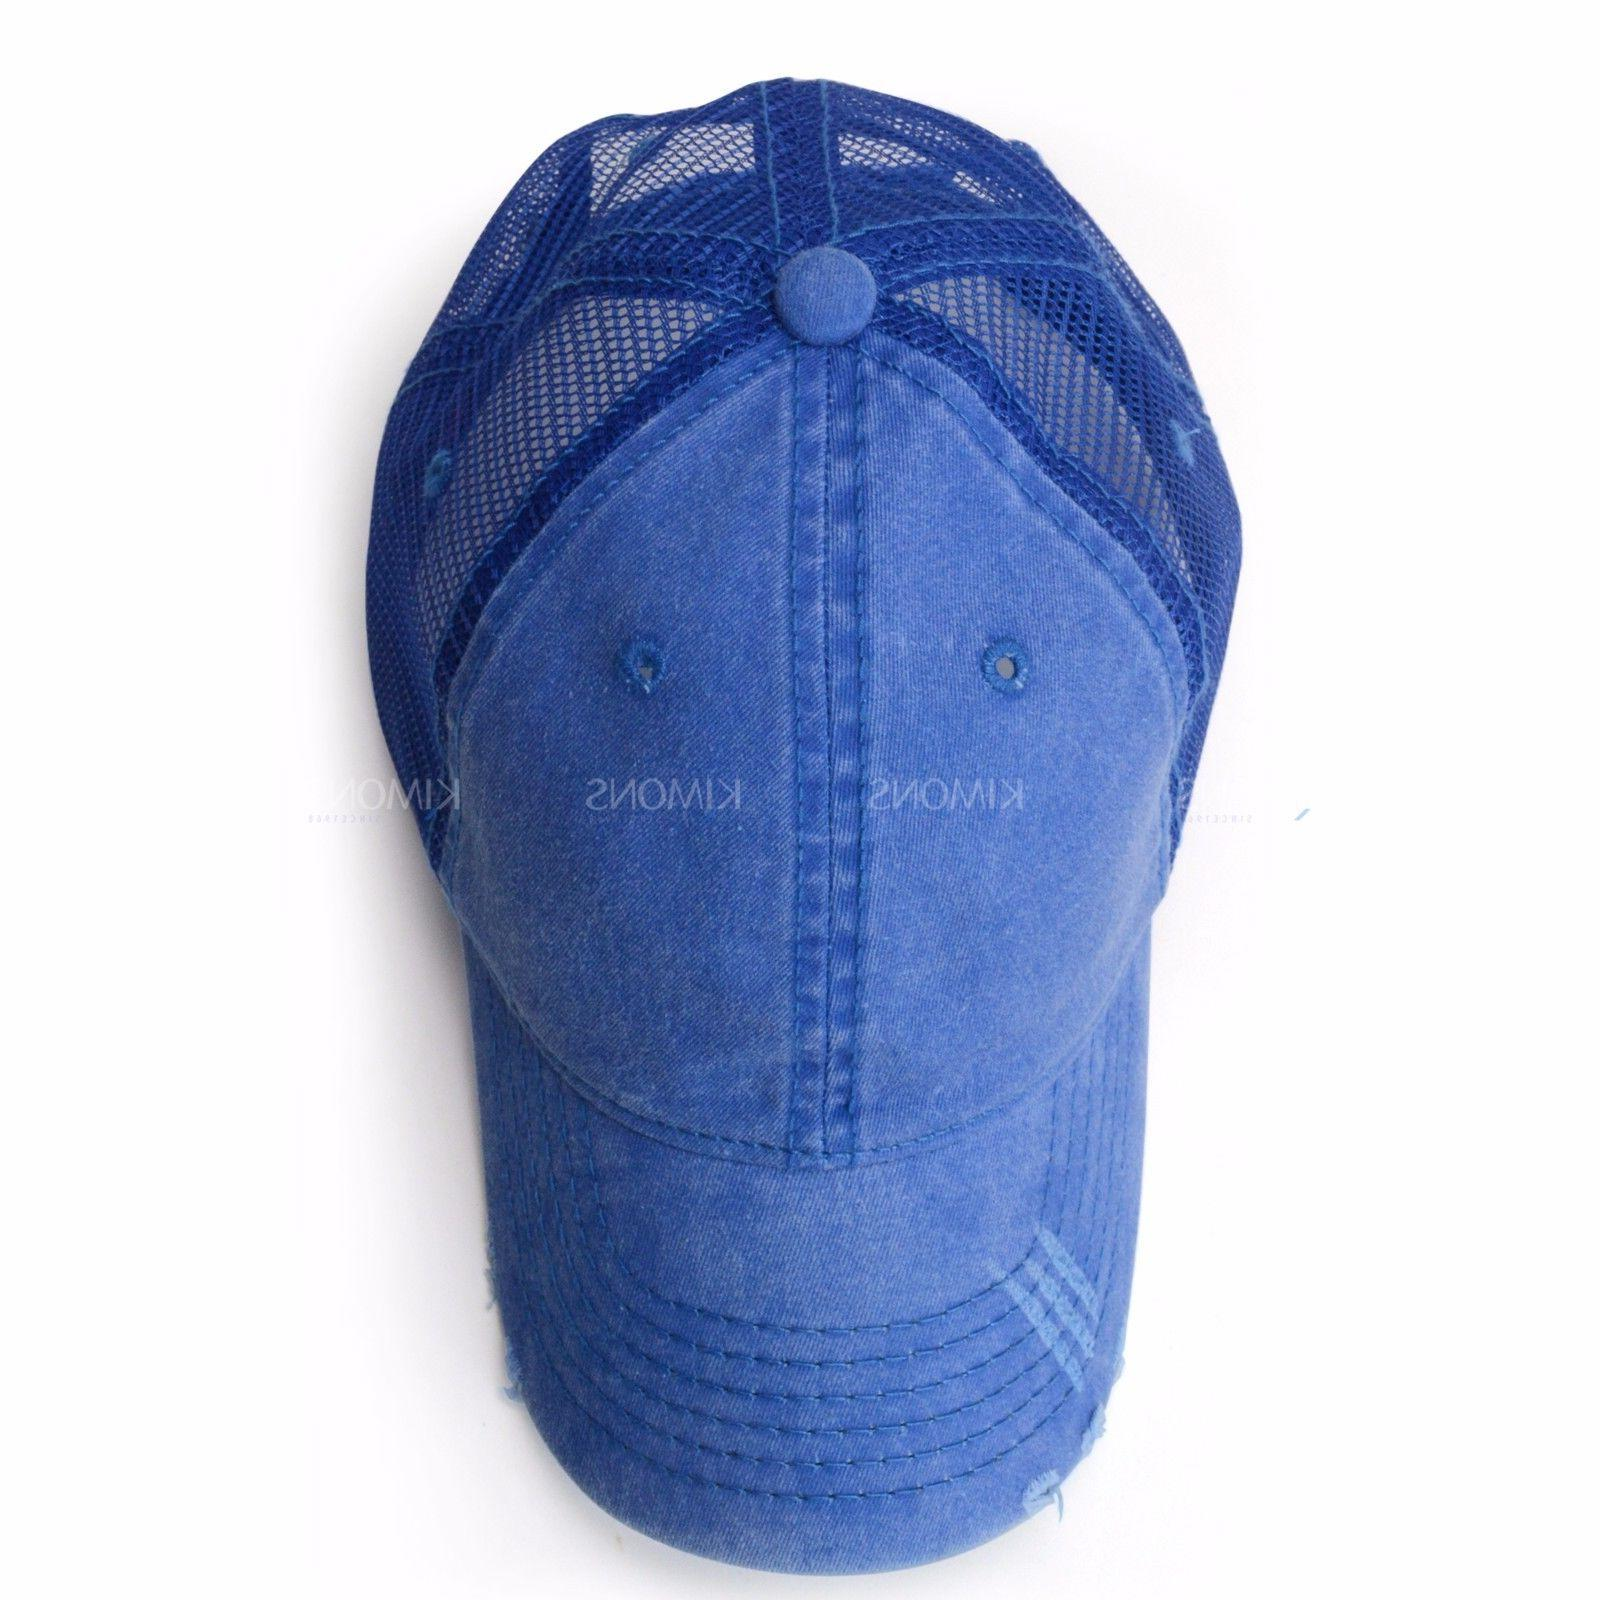 Mesh Trucker Cap Cotton Washed Baseball